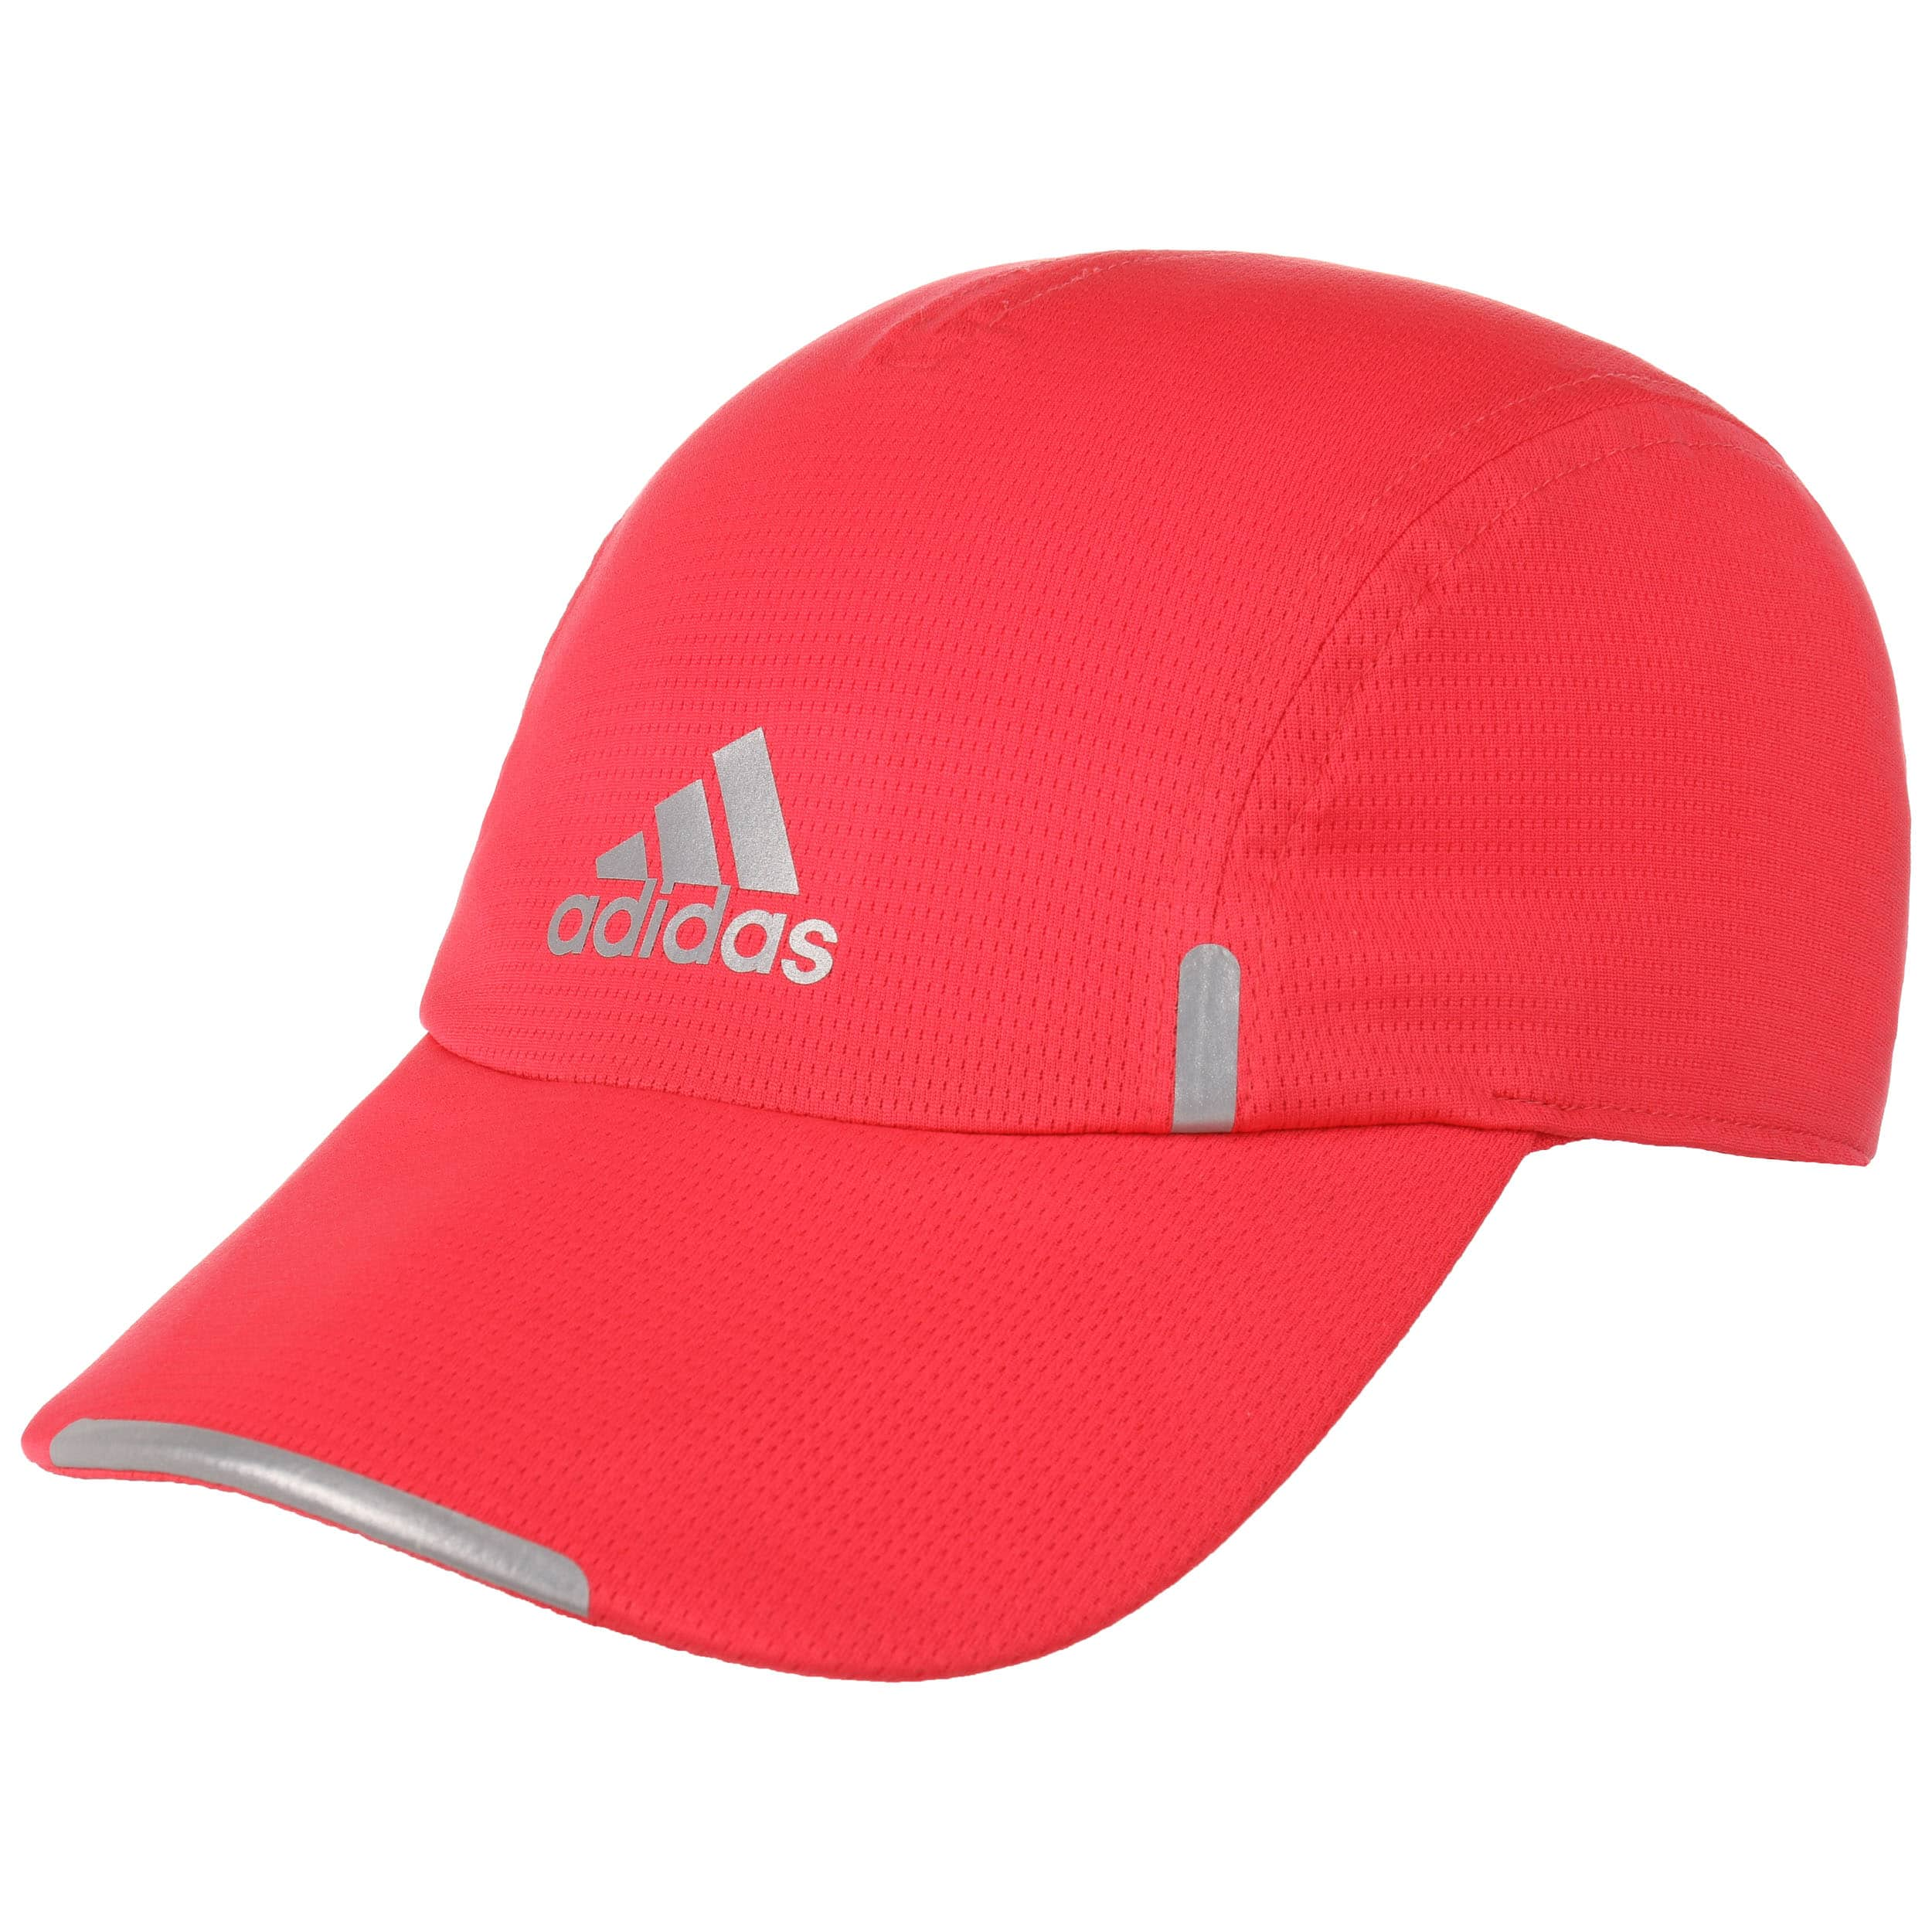 Climacool Running Strapback Cap. by adidas 98e3d2cca11c